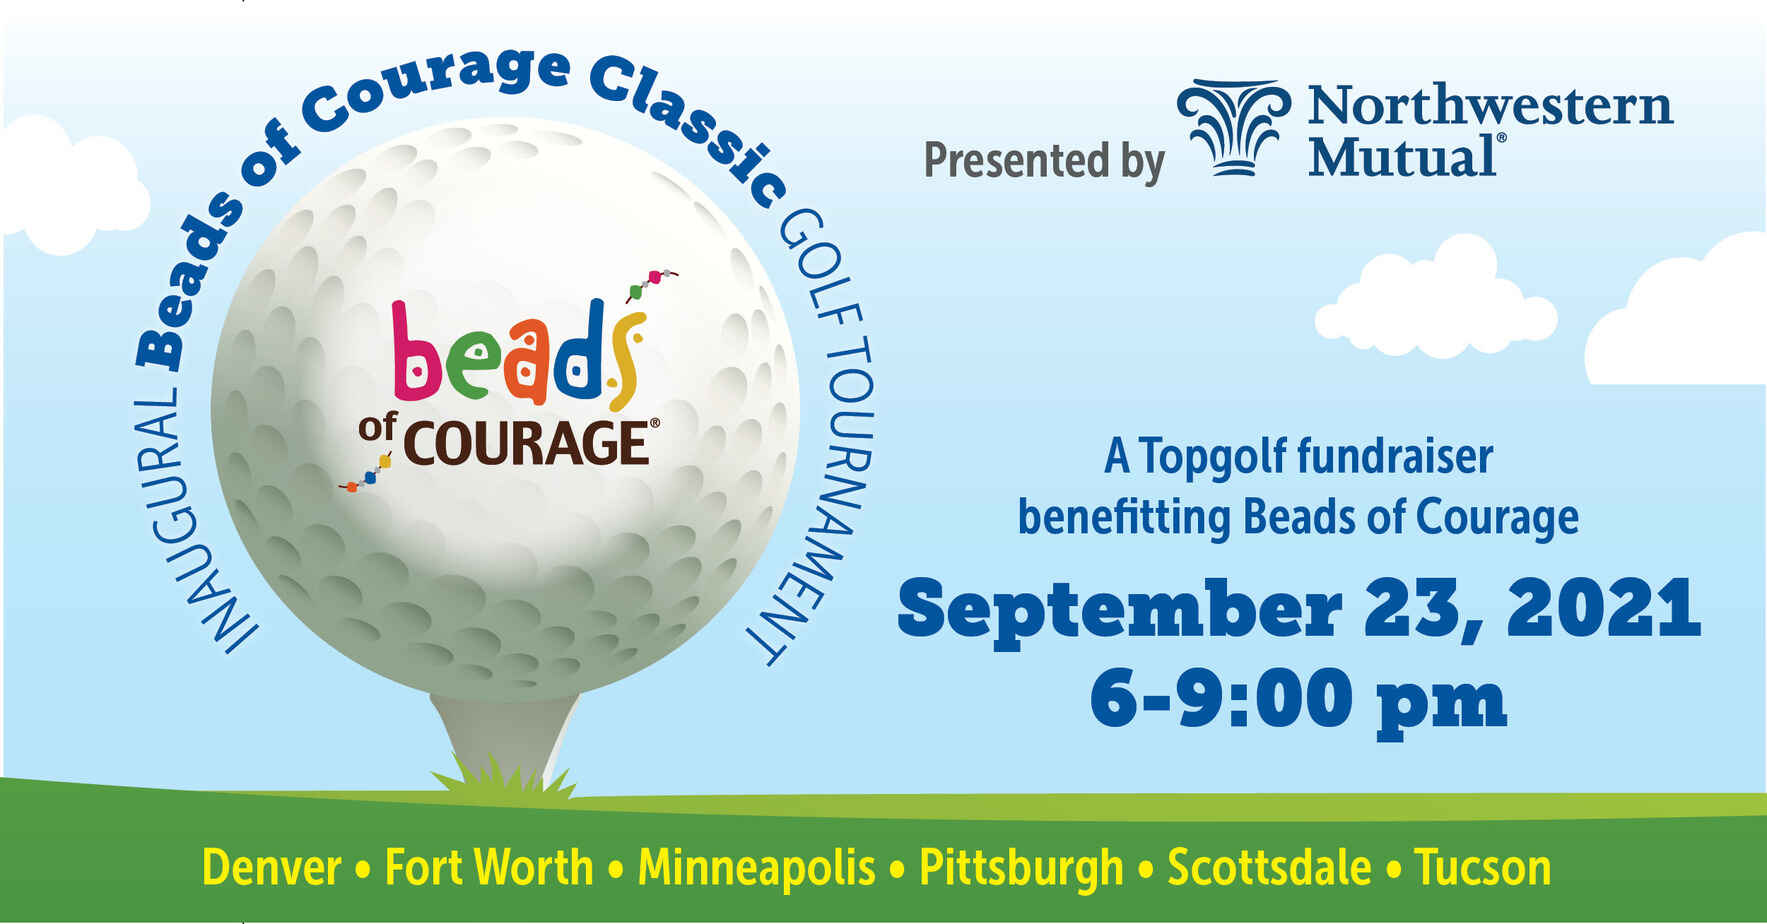 2021 Tucson Beads of Courage Classic Golf Tournament image